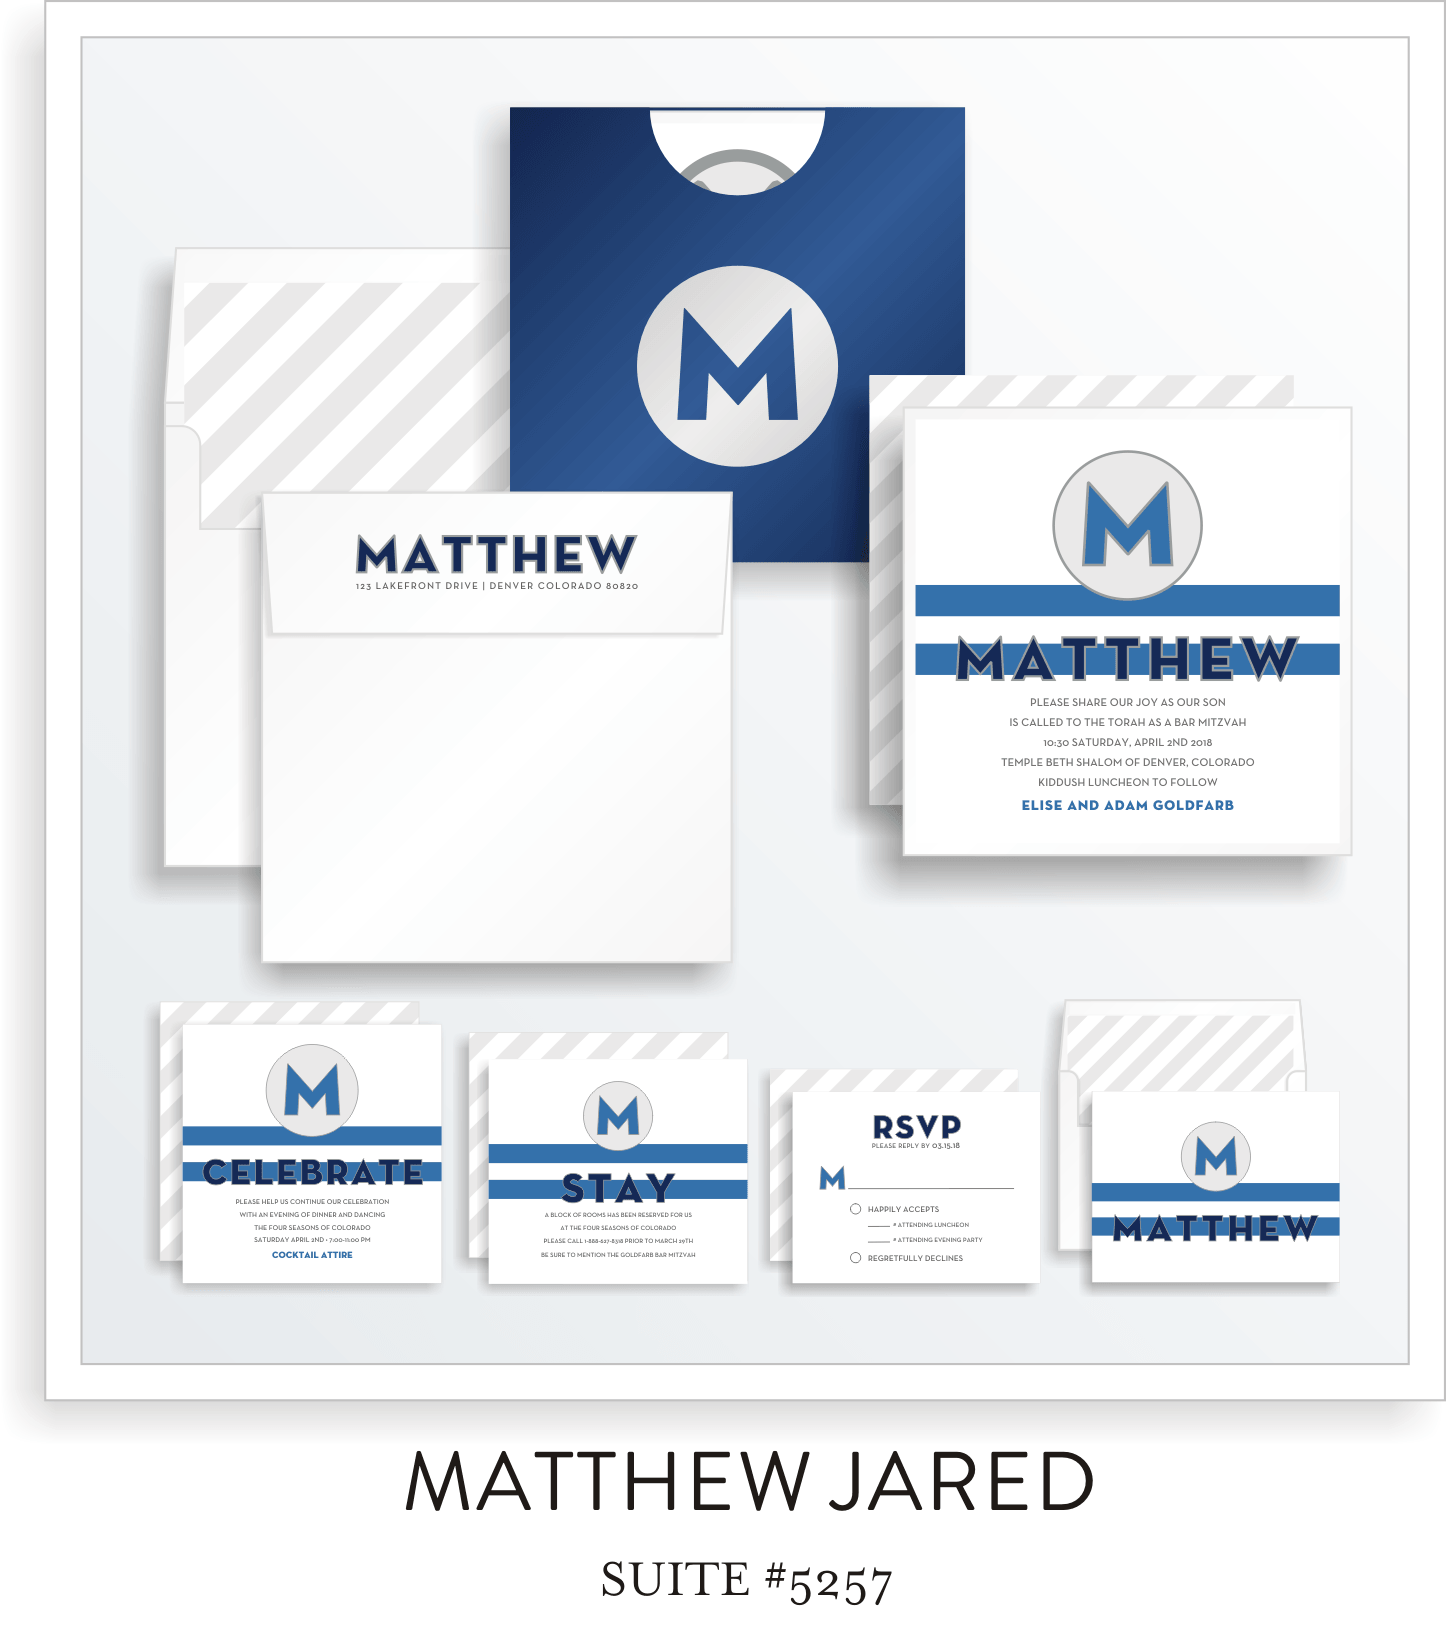 Copy of Bar Mitzvah Invitation Suite 5257 - Matthew Jared